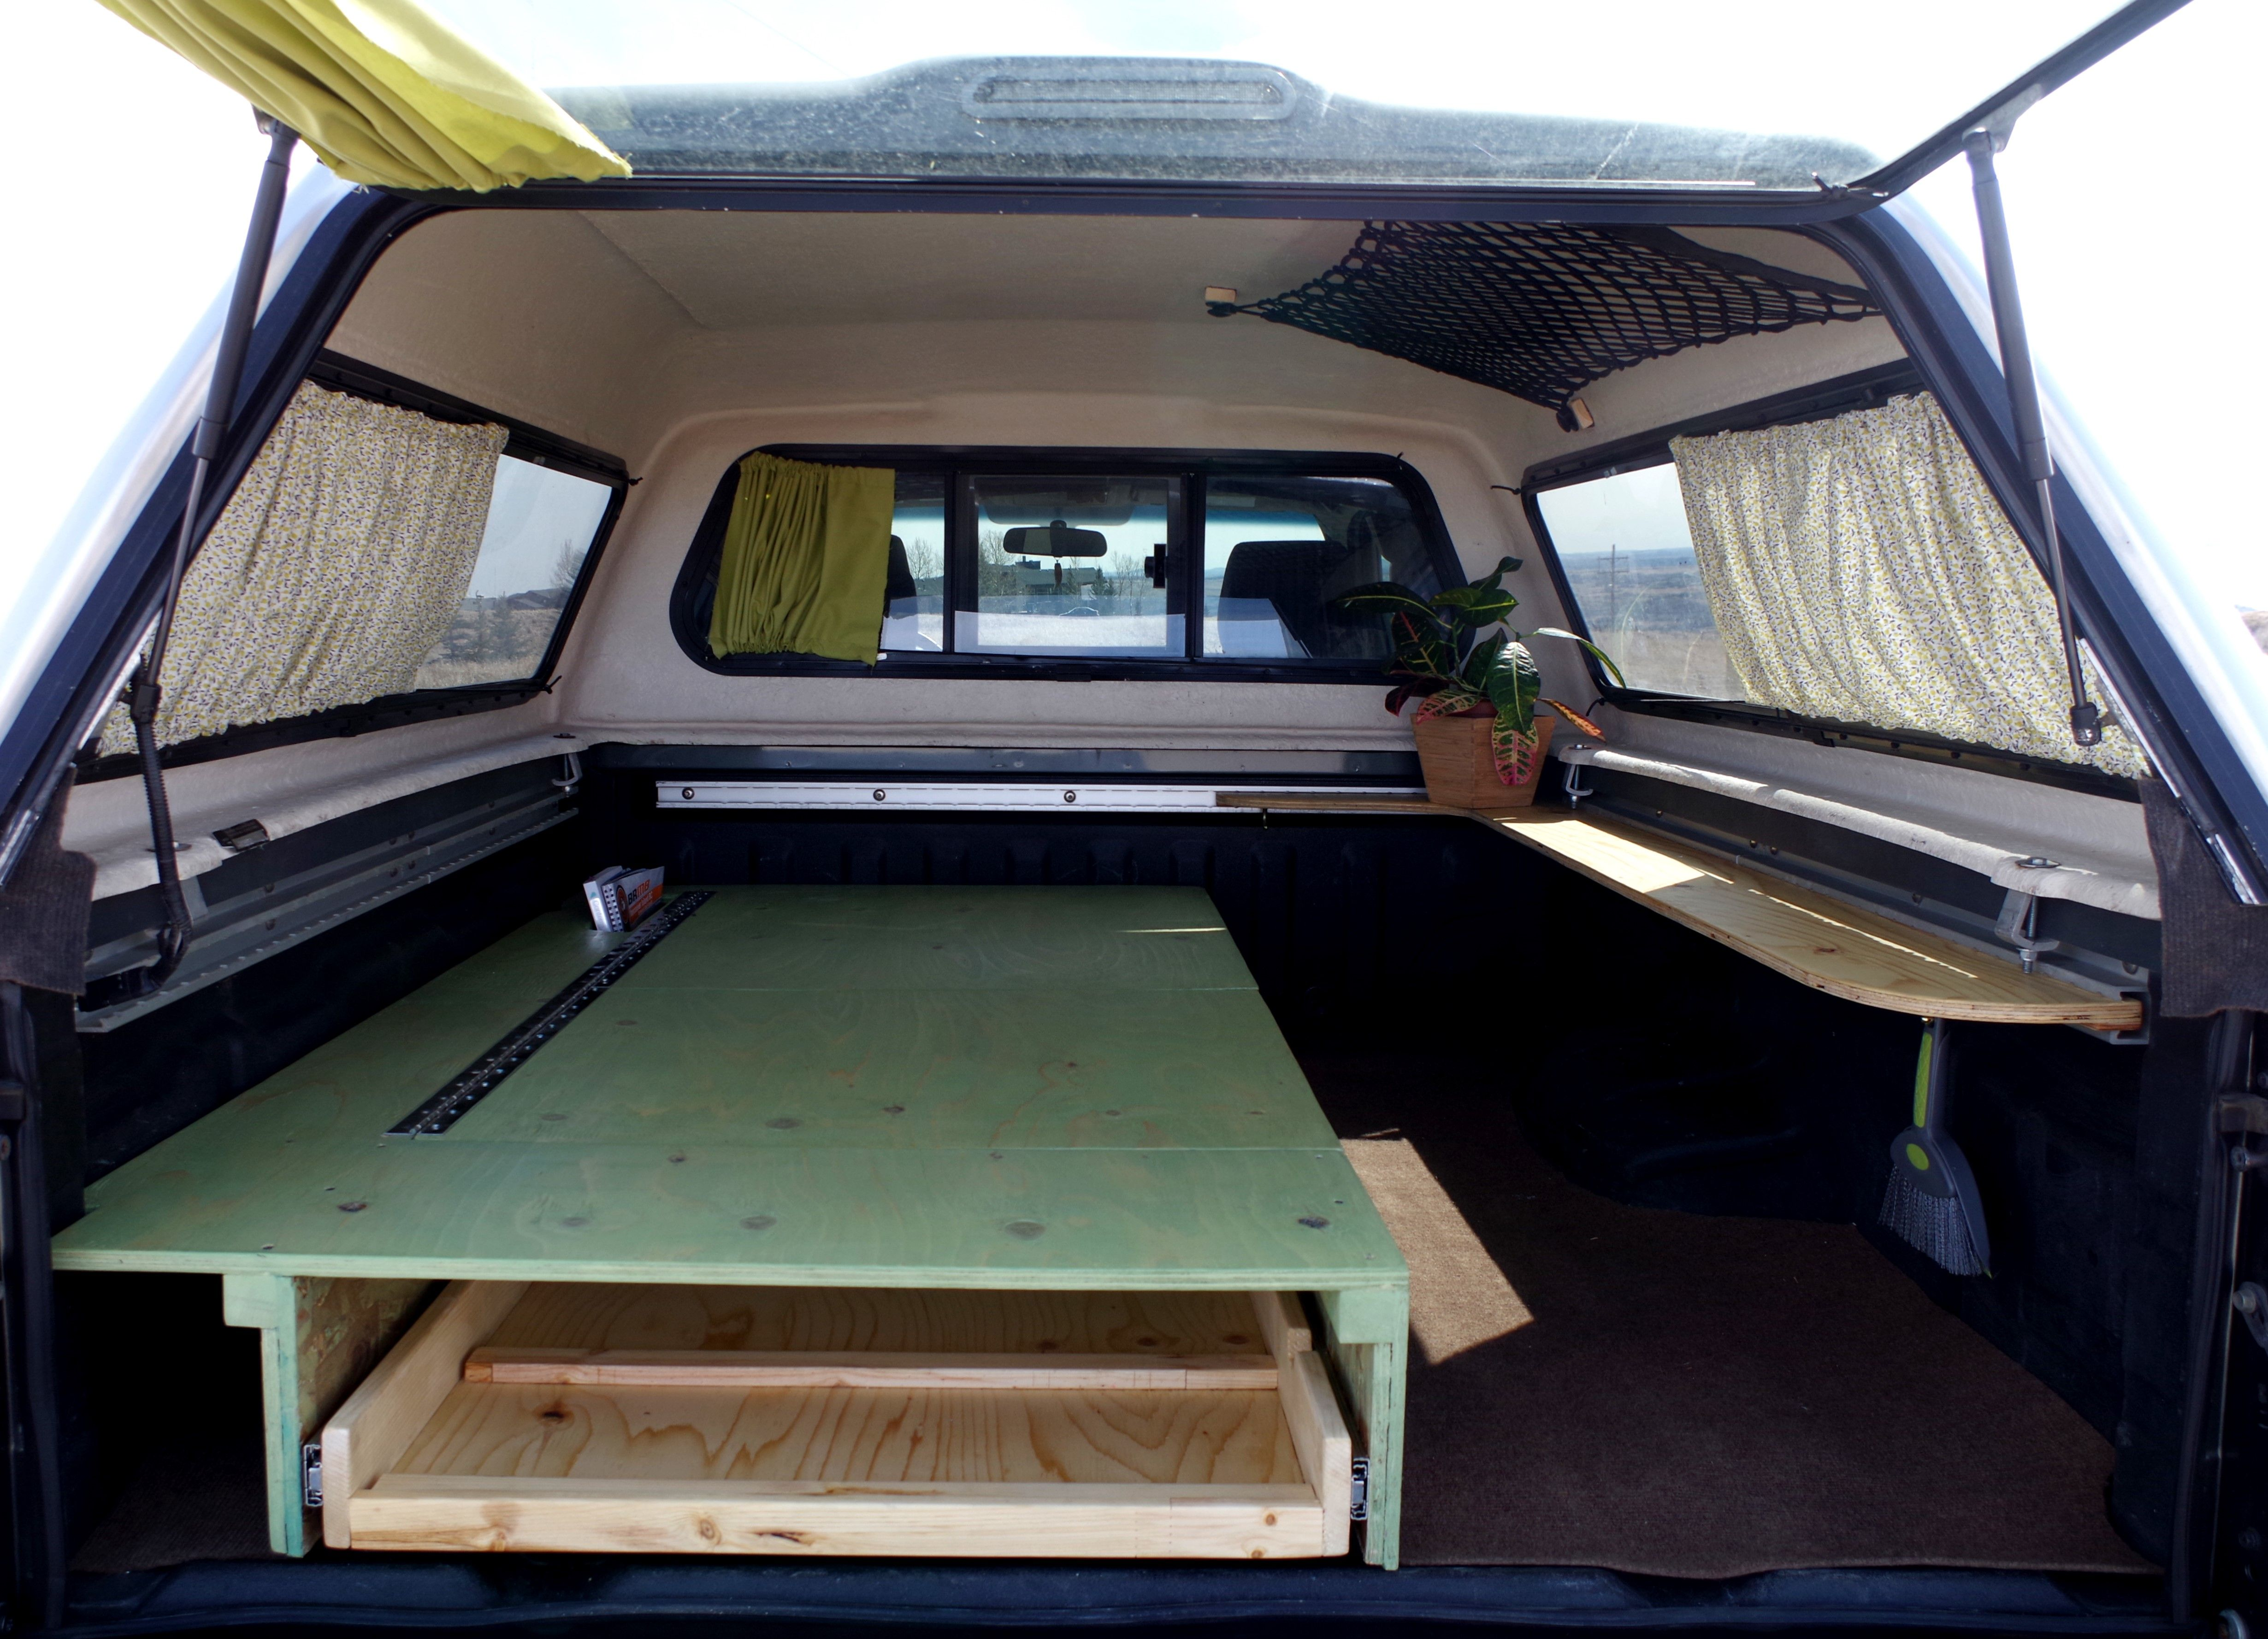 Tiny truck camper mini home in truck bed truck canopy for Diy platform canopy bed